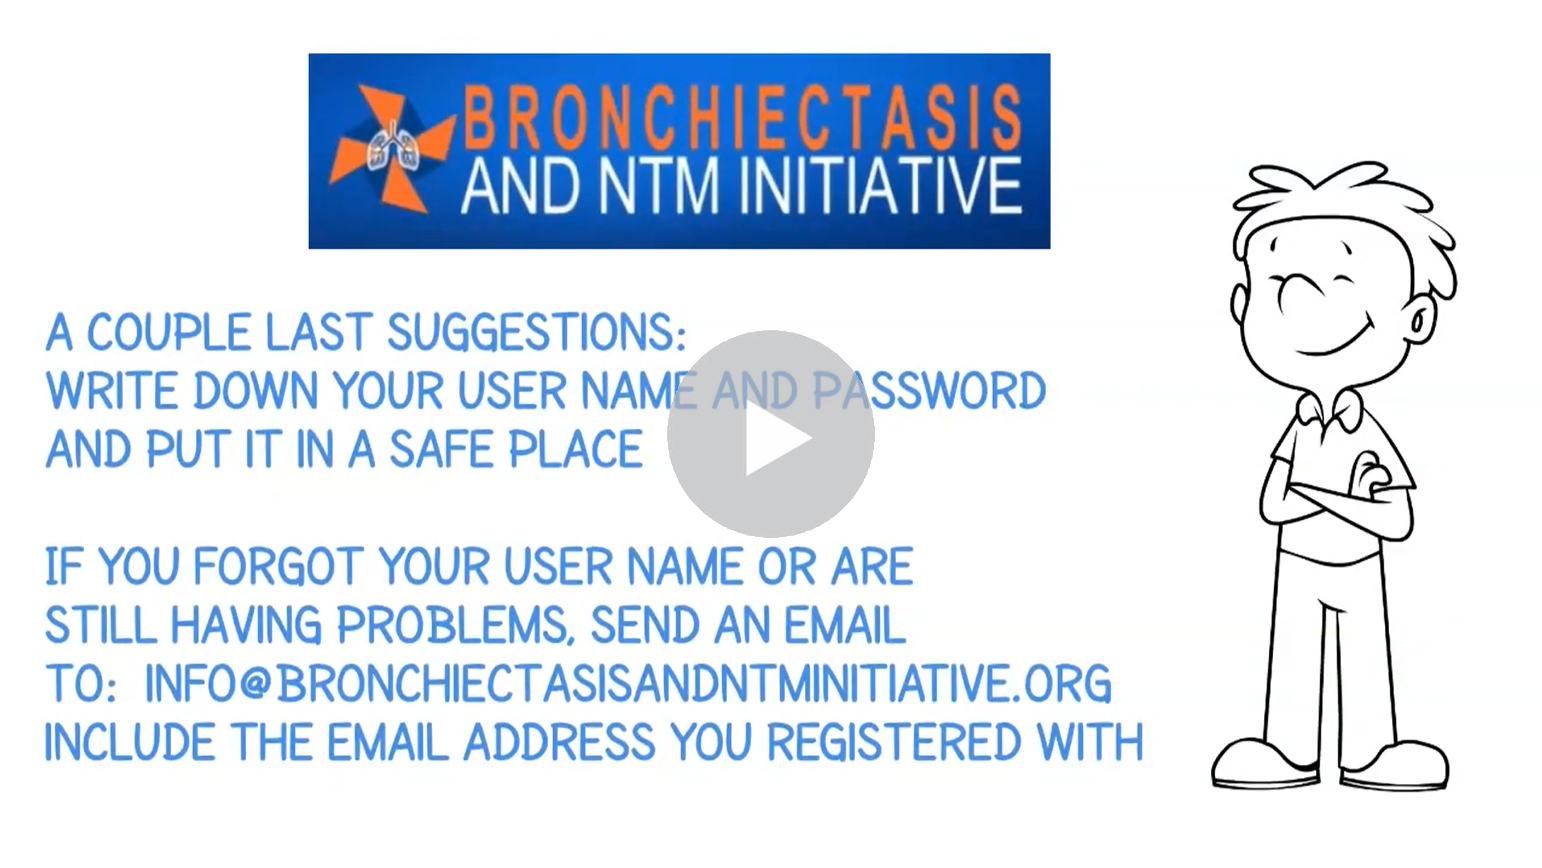 How to Reset a Forgotten Password. Click to watch the video.